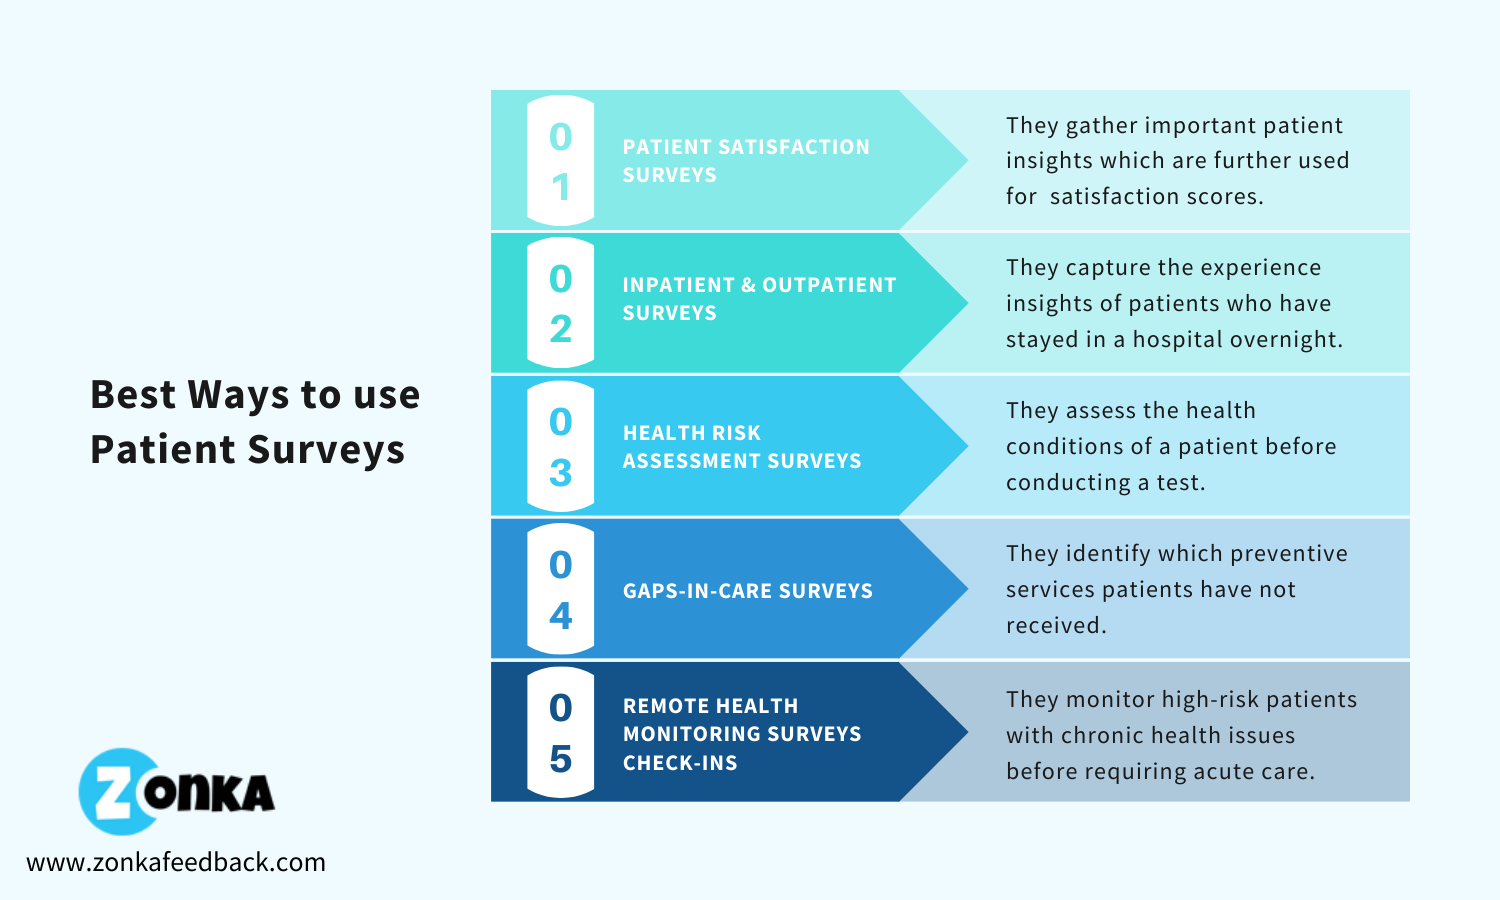 methods-to-use-patient-surveys